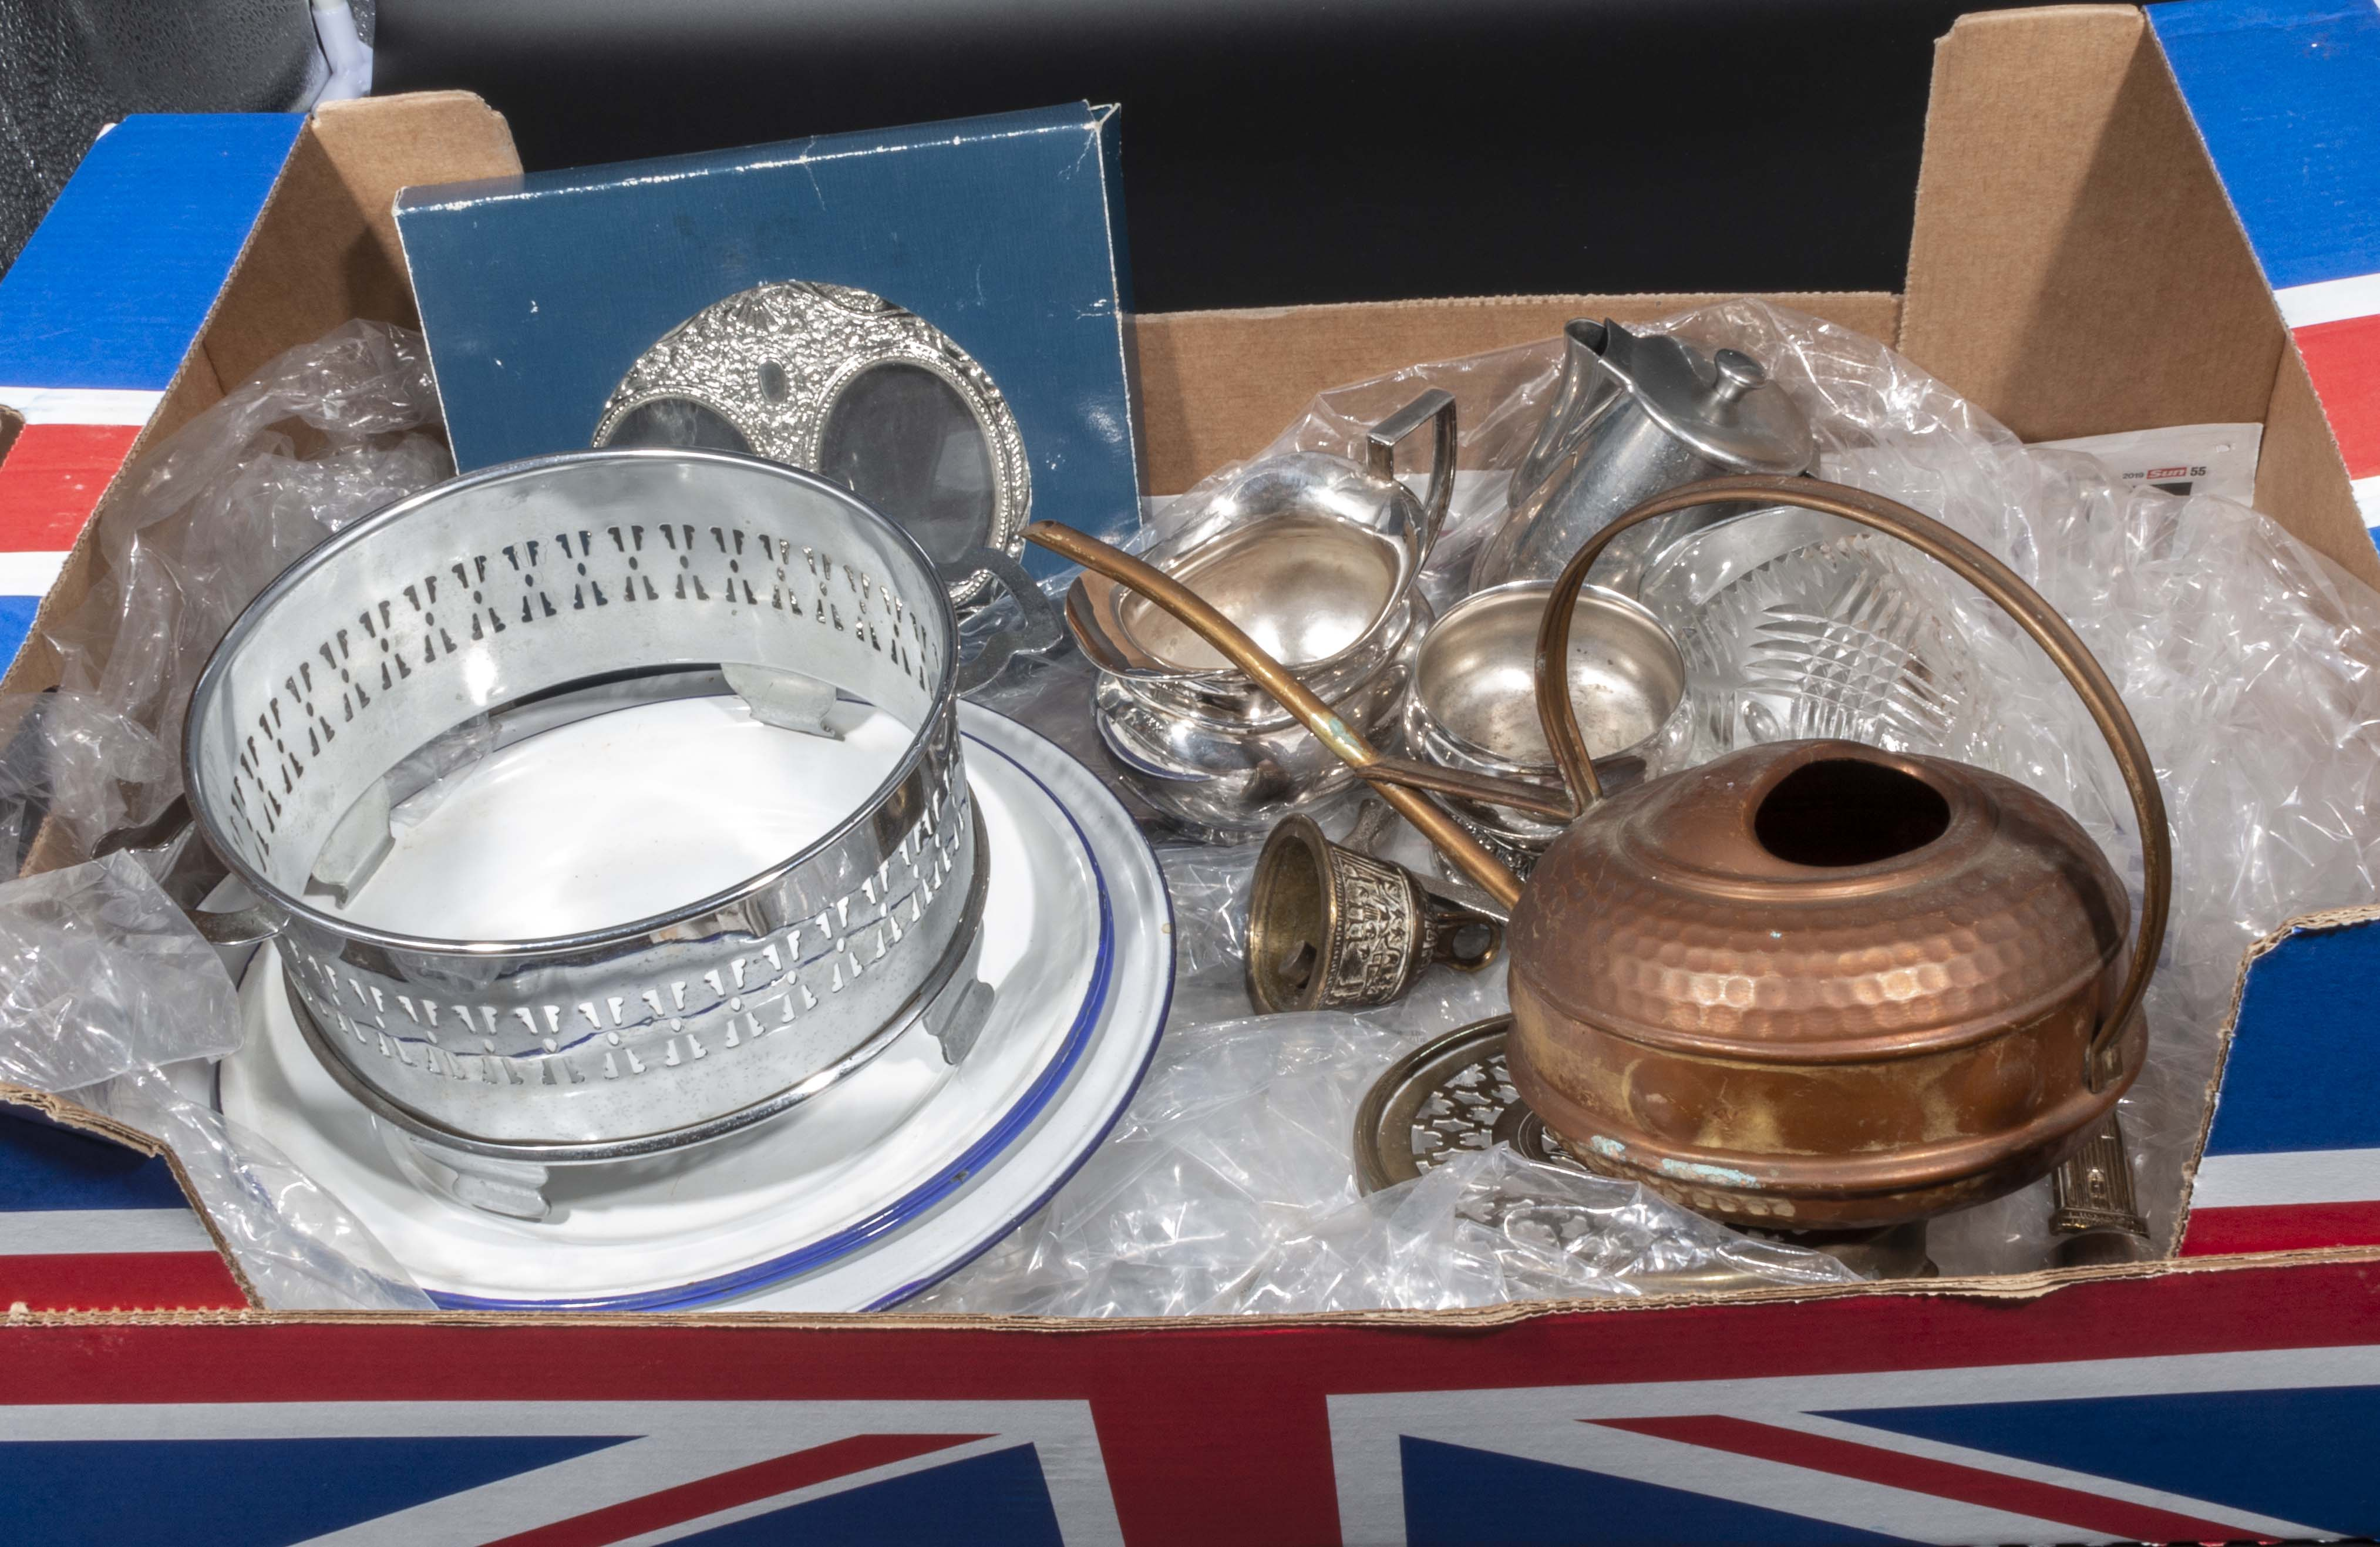 A box containing metalware